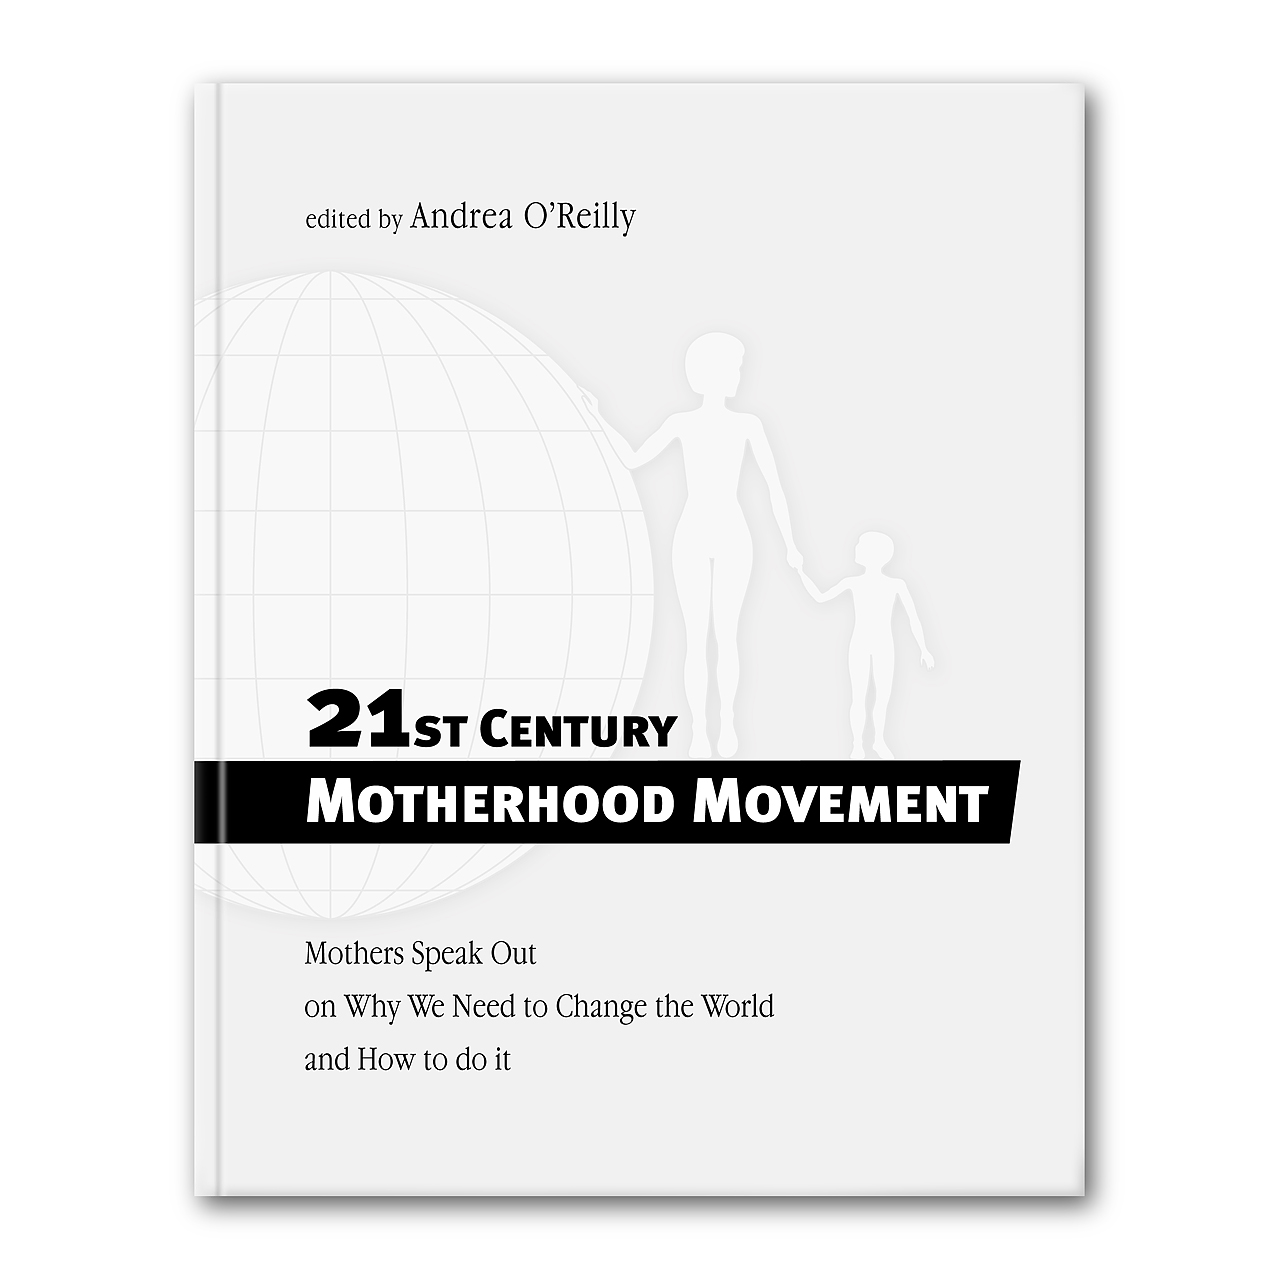 Book Cover Design by sokol25 - Entry No. 47 in the Book Cover Design Contest Unique 21st Century Motherhood Movement. book cover needed.